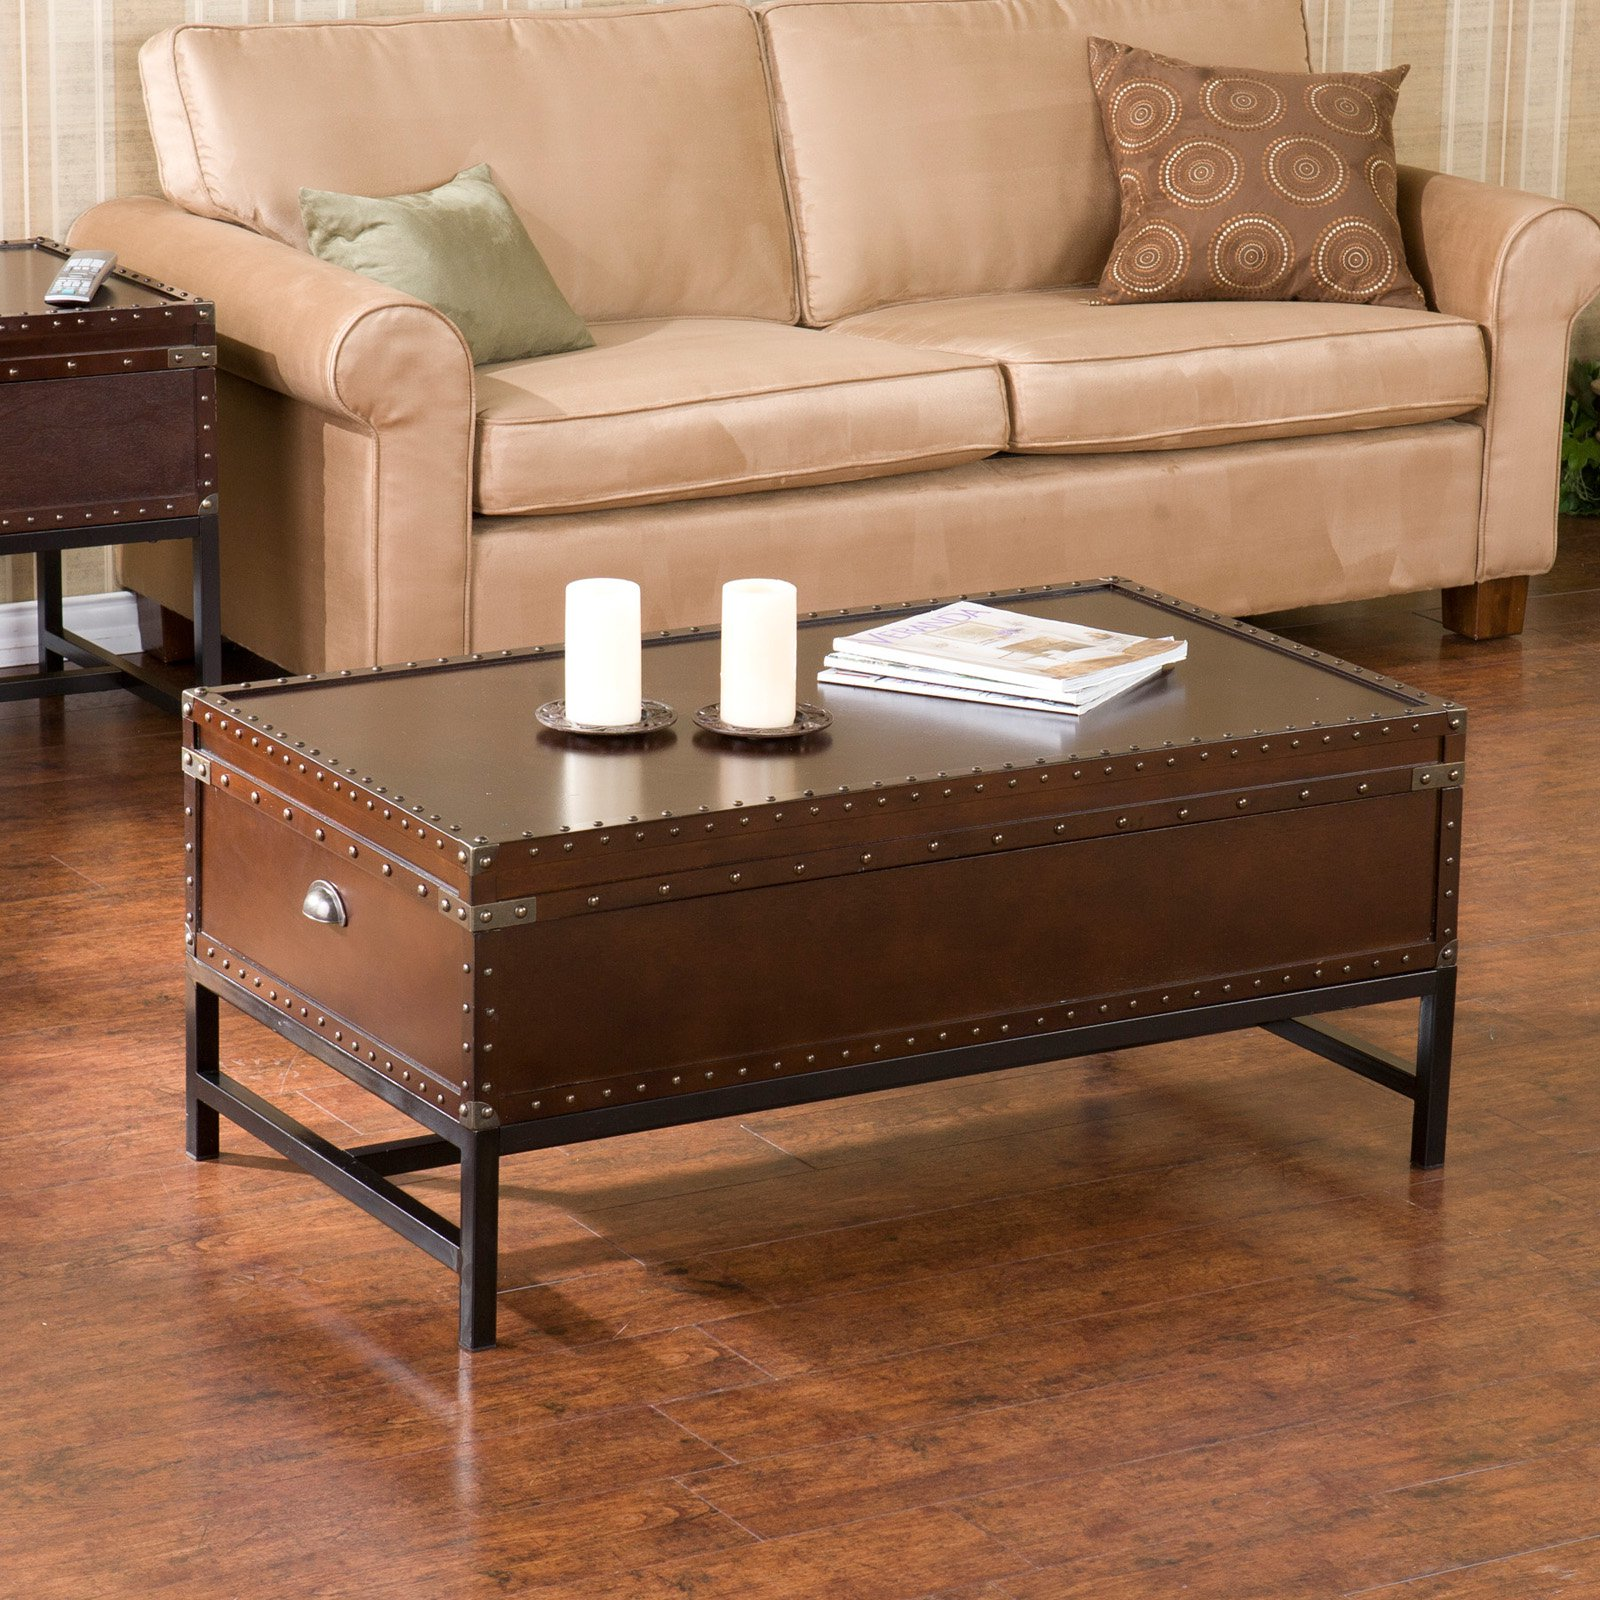 Southern Enterprises Voyager Espresso Trunk Coffee Table Coffee Table Coffee Table Trunk Coffee Table With Storage